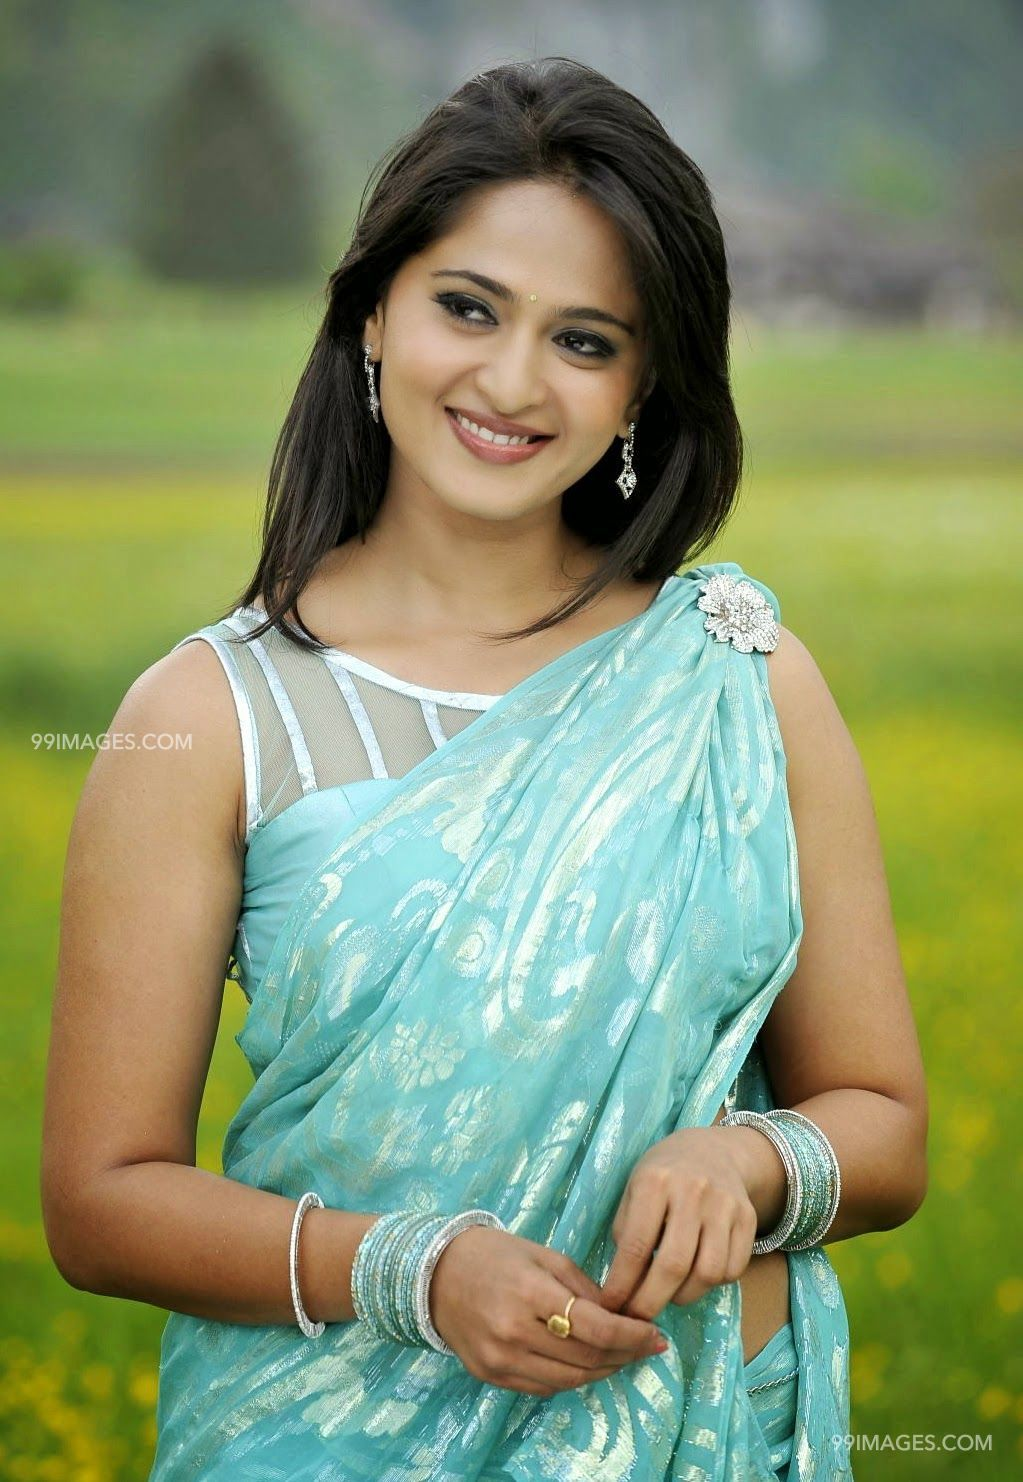 Anushka Shetty Beautiful HD Photoshoot Stills (1080p) (3649) - Anushka Shetty